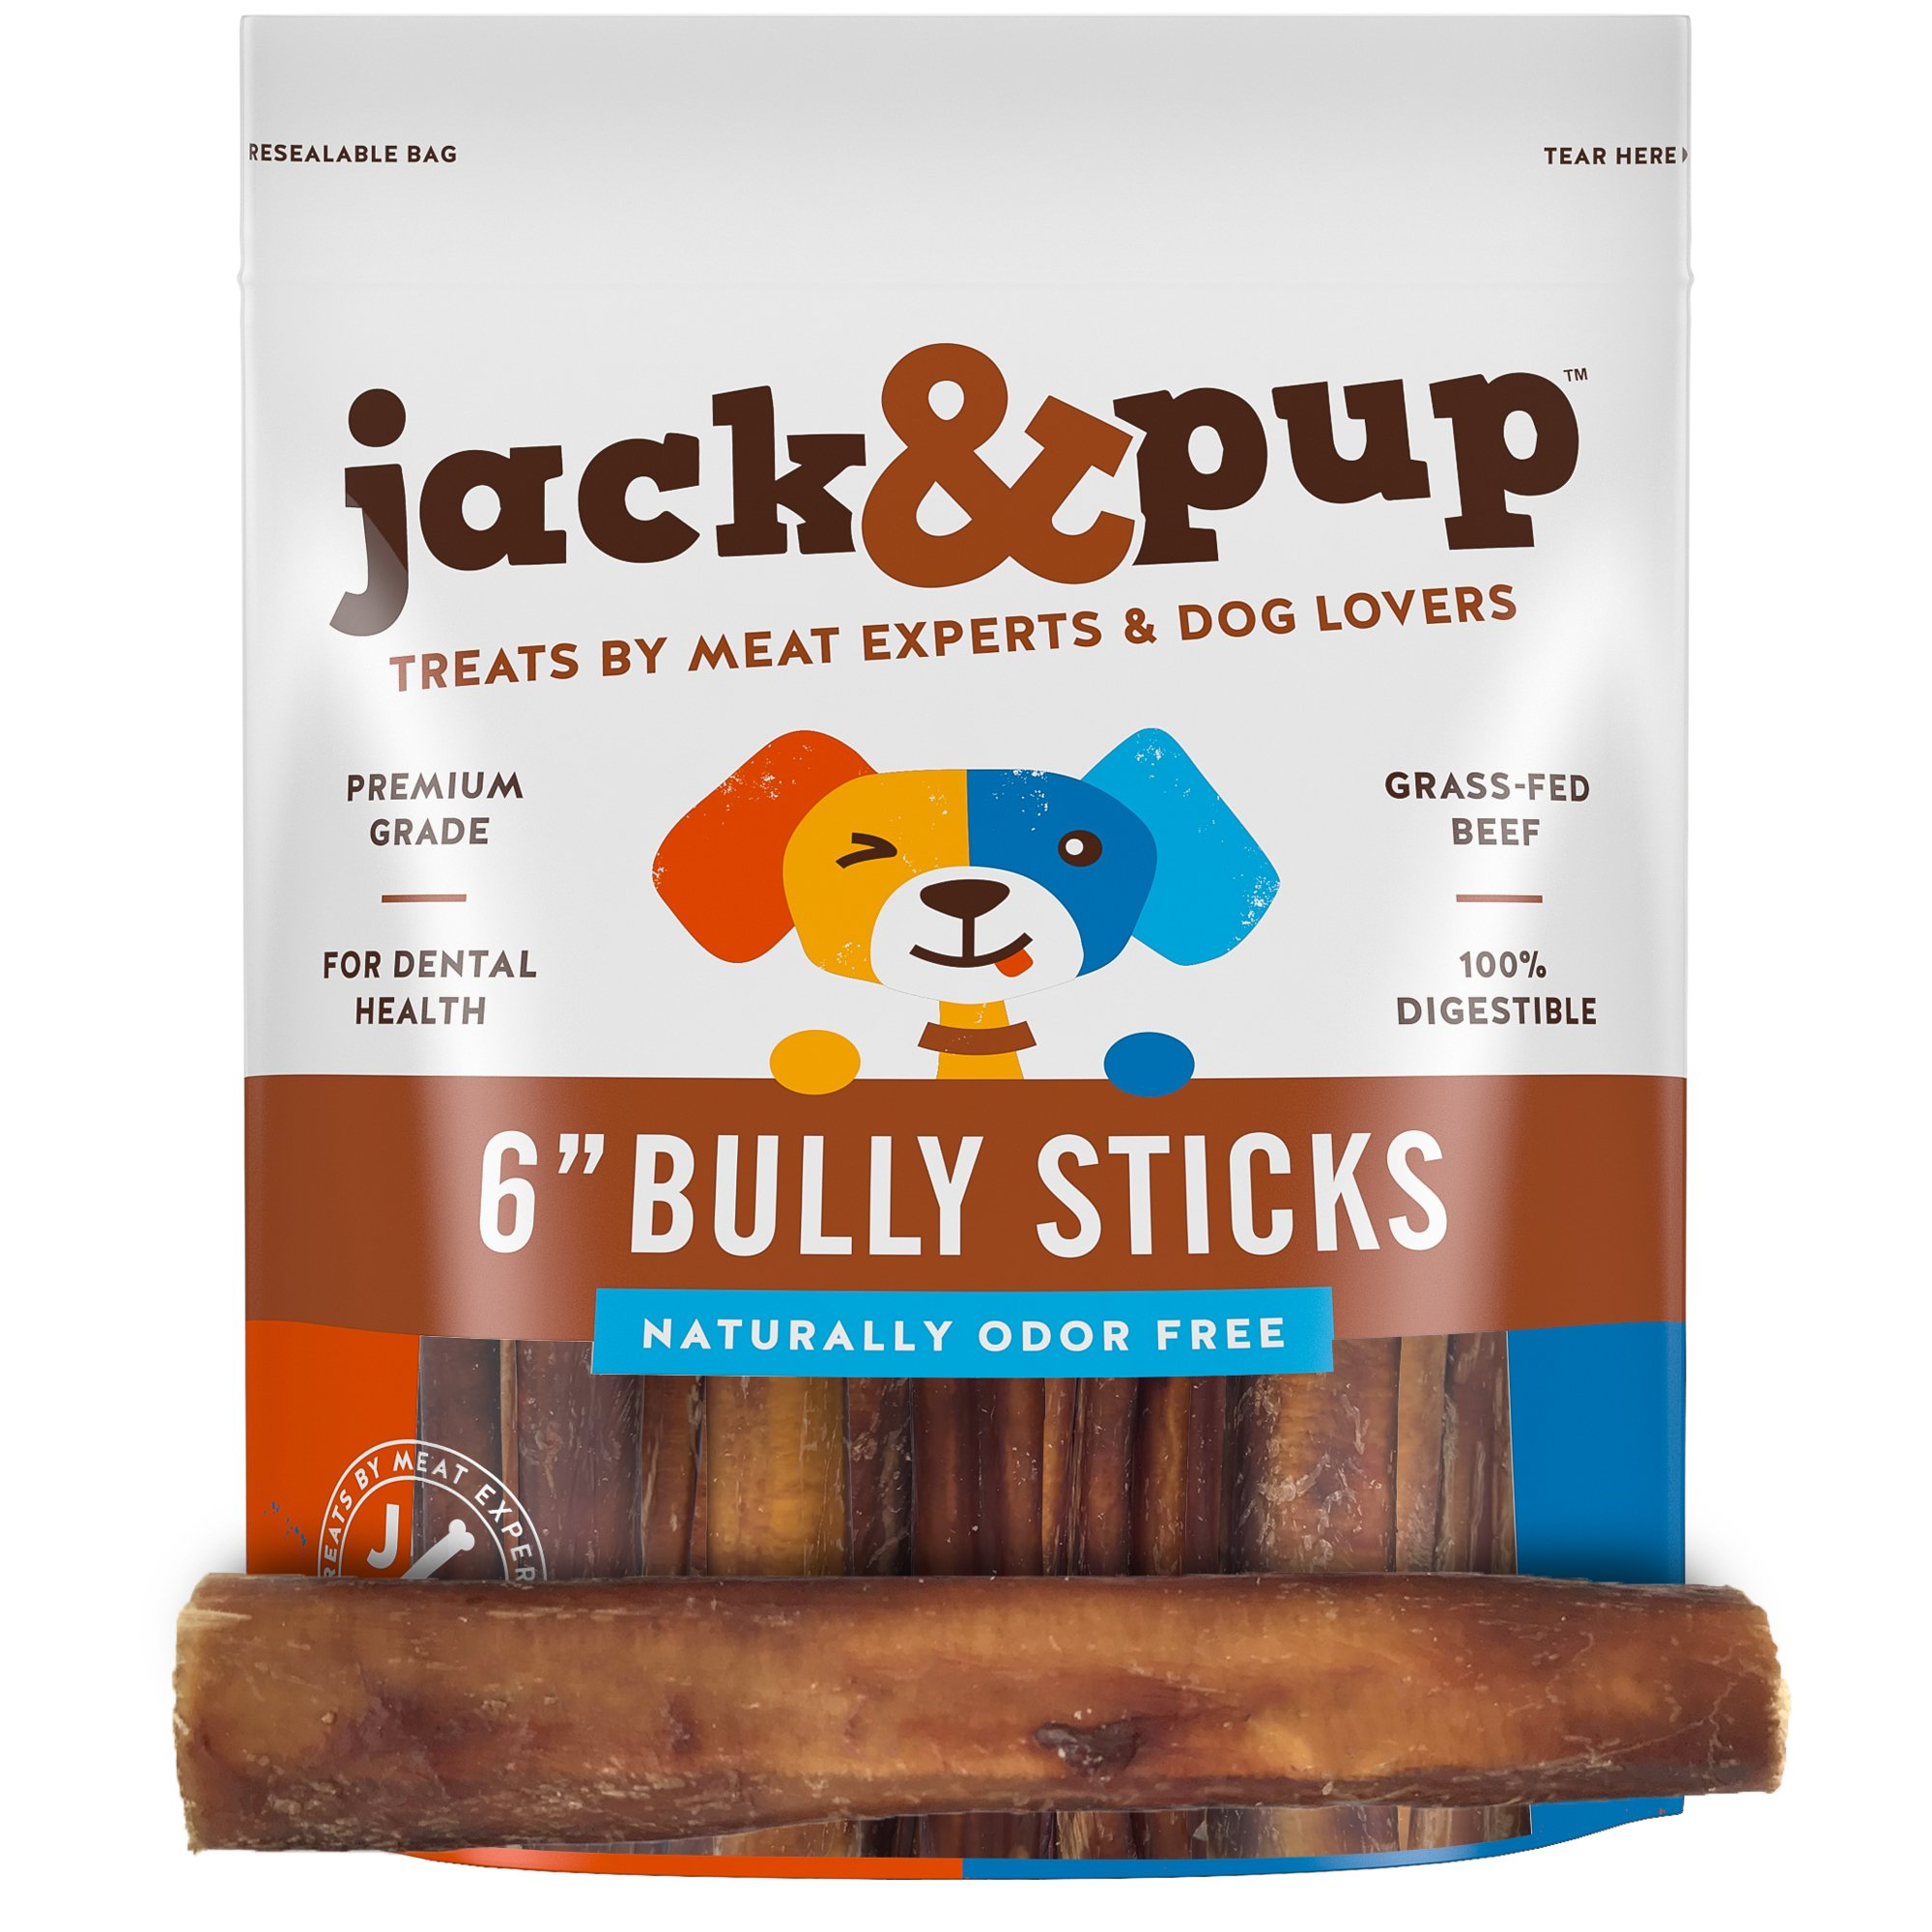 Jack&Pup 6-inch Premium Grade Odor Free Bully Sticks Dog Treats [Thick], (40 Pack) - 6'' Long All Natural Gourmet Dog Treat Chews - Fresh and Savory Beef Flavor - 30% Longer Lasting